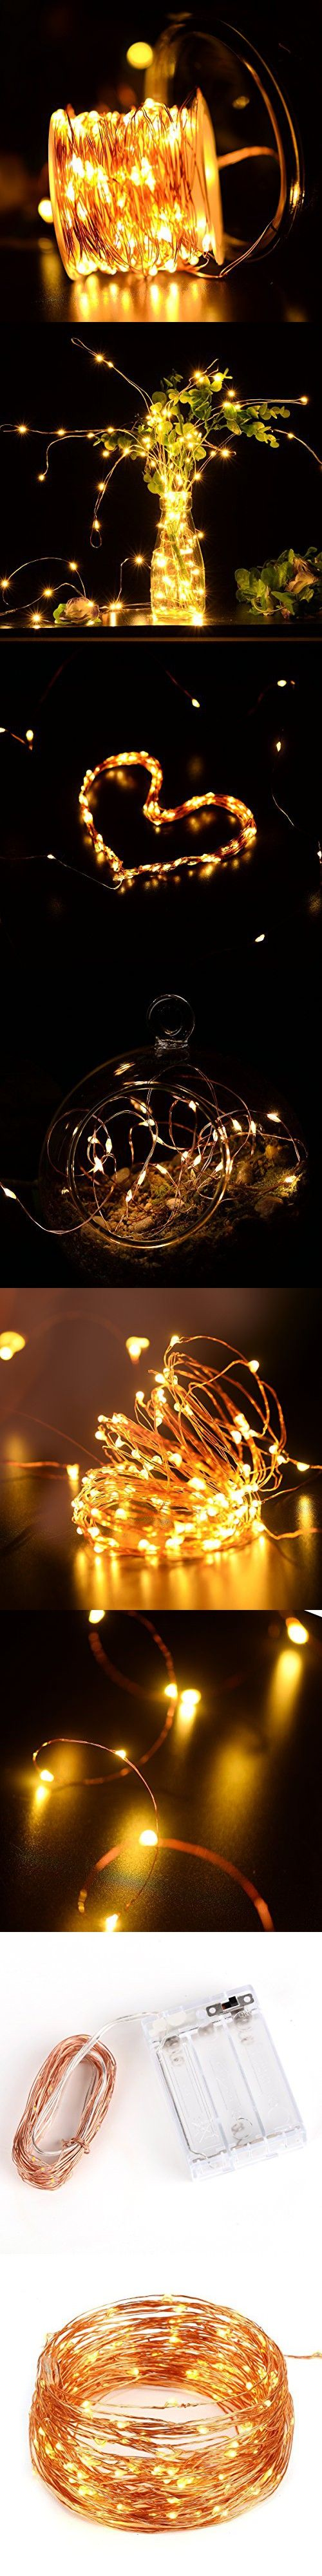 Design Light Ropes And Strings best 25 light ropes strings ideas on pinterest led rope copper wire ltrop 33ft 100 battery powered starry string lights ambiance lighting fo